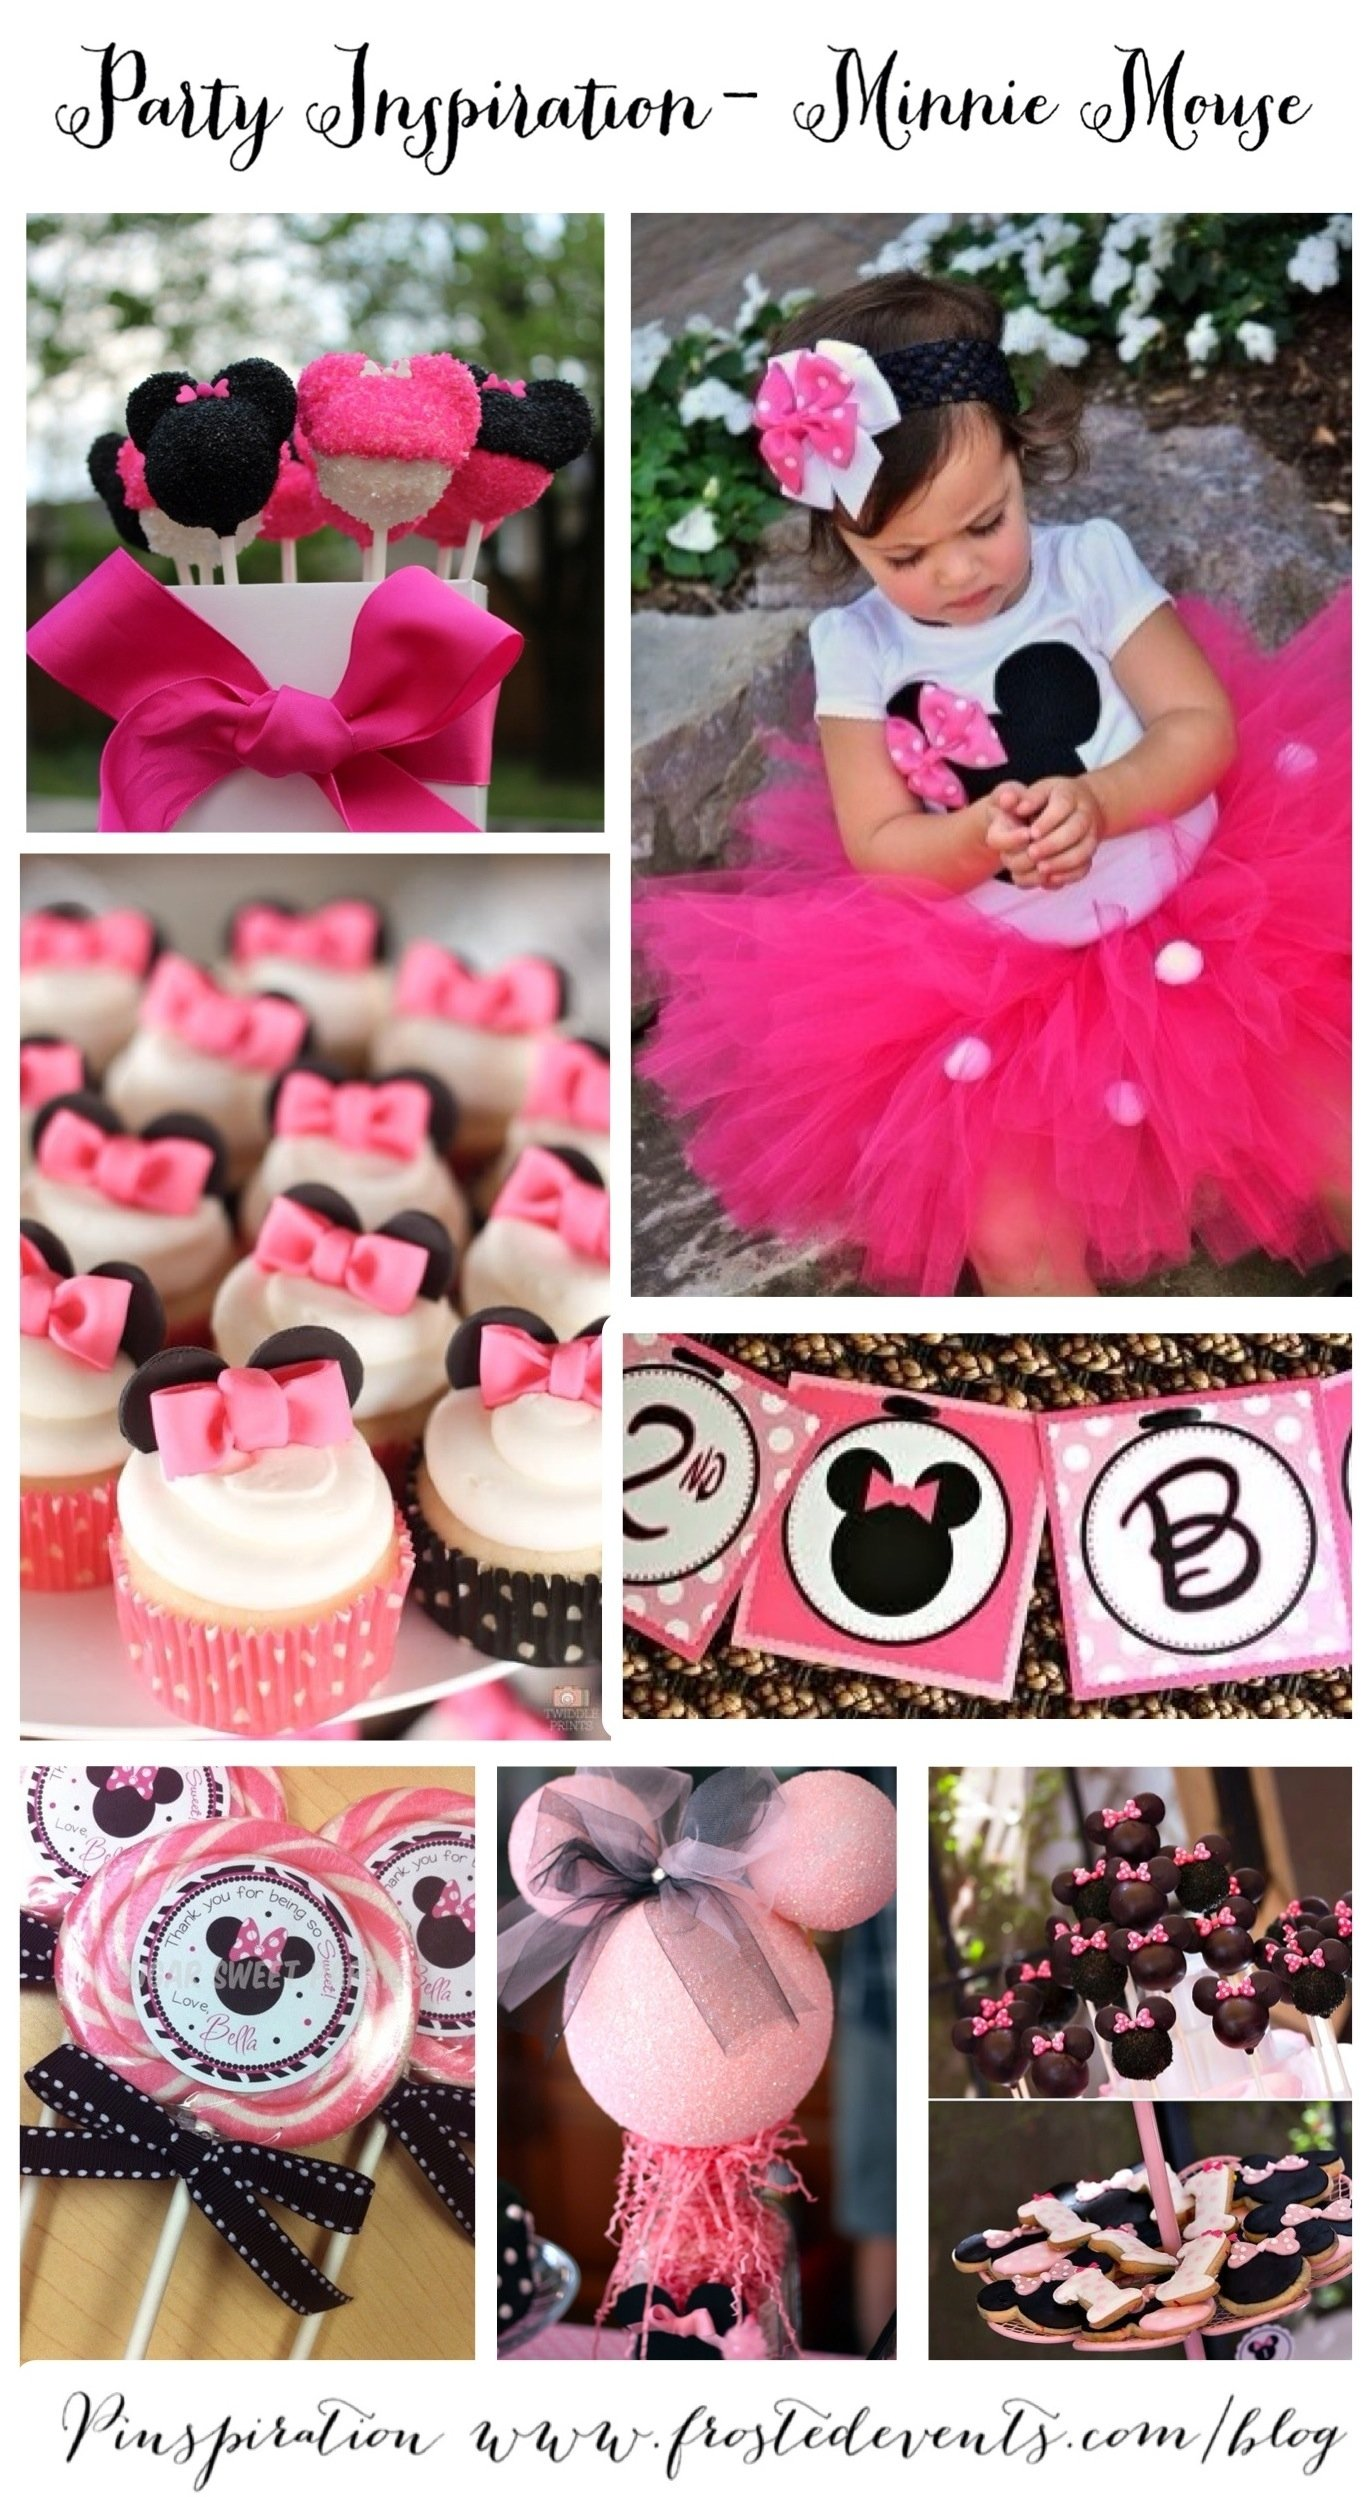 10 Perfect Mickey And Minnie Mouse Party Ideas minnie mouse party ideas 2020